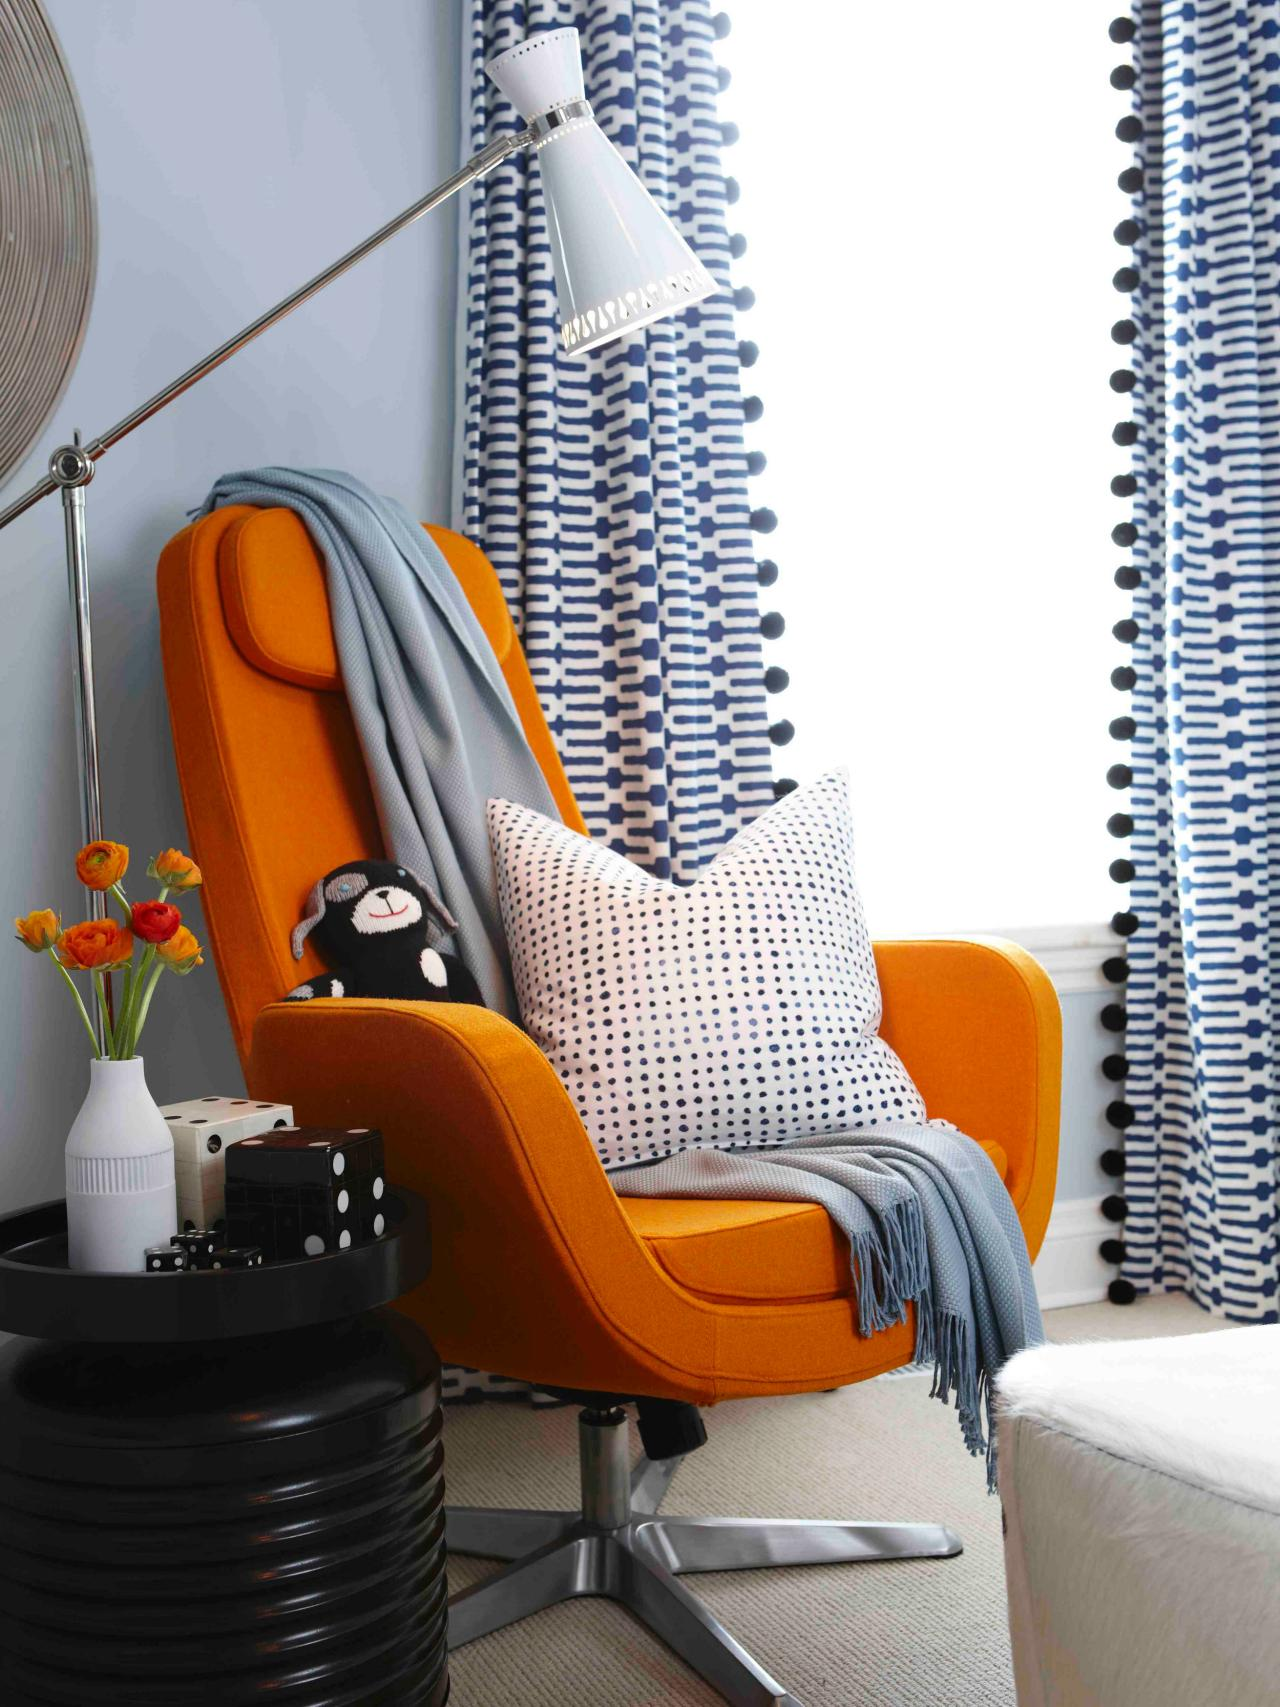 Minimalist-reading-nook-with-a-vibrant-orange-chair-